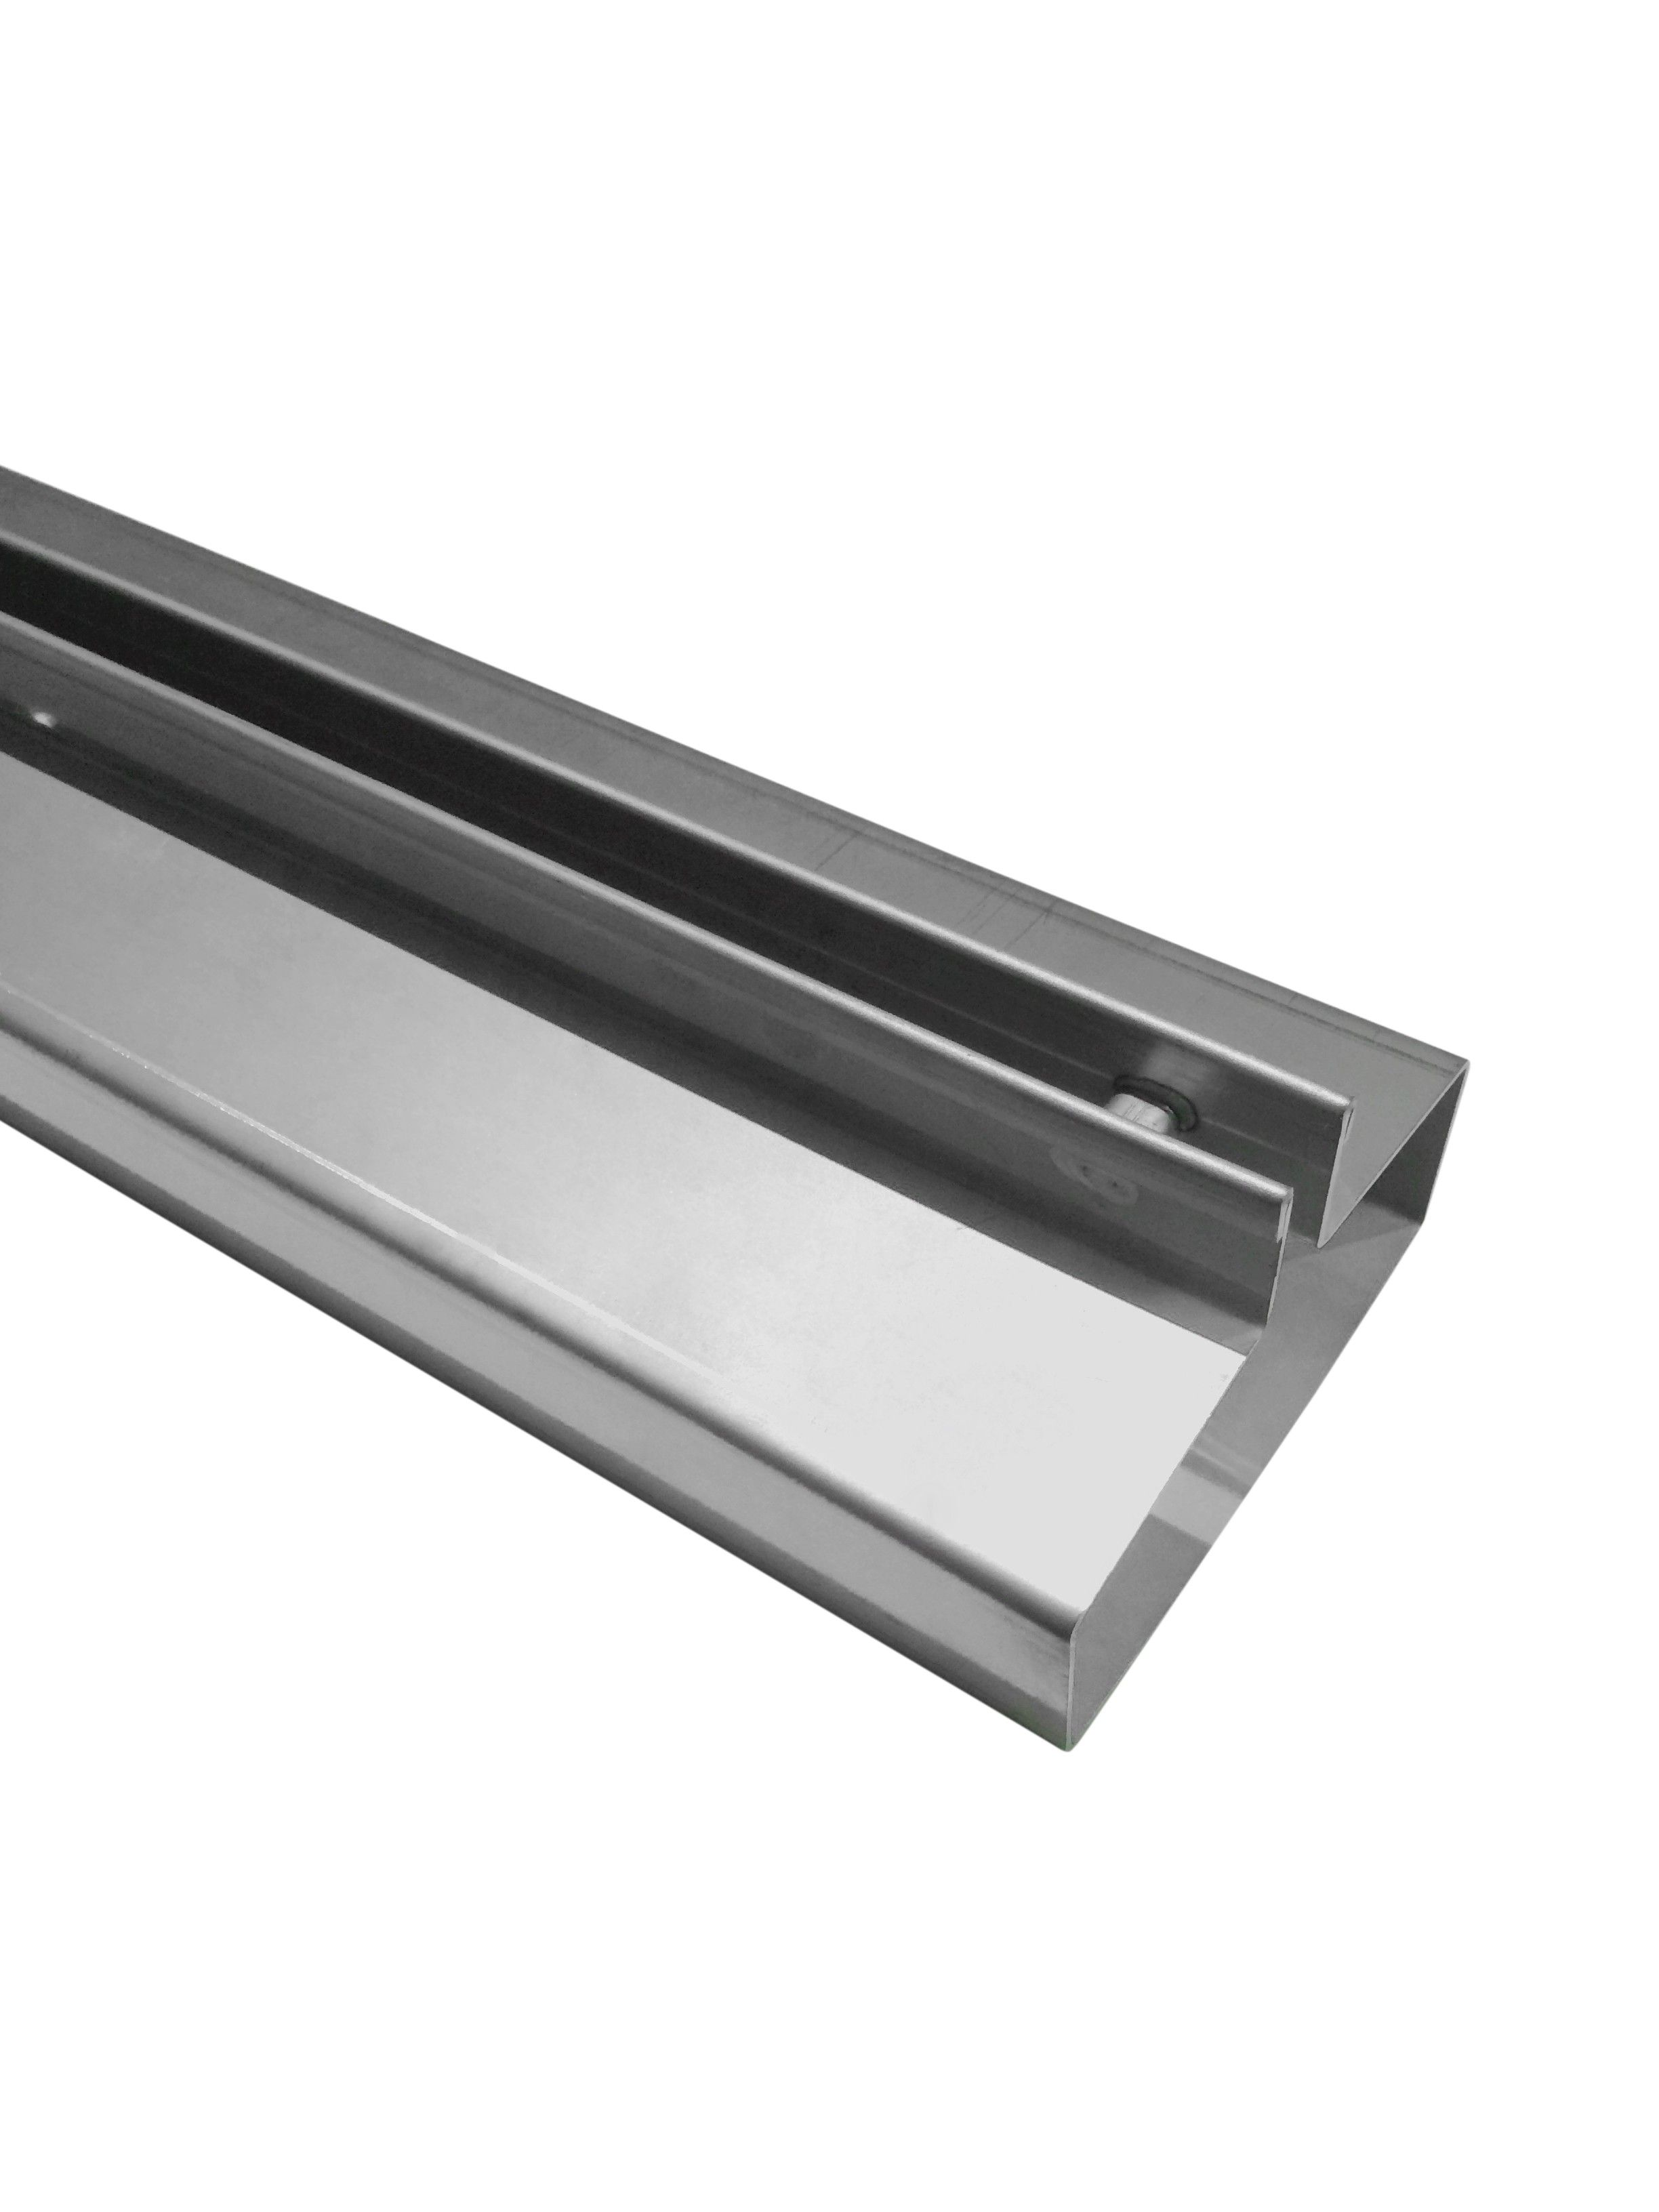 Slot Drain 1m 2m 316 Stainless Steel Linear Floor Waste Linear